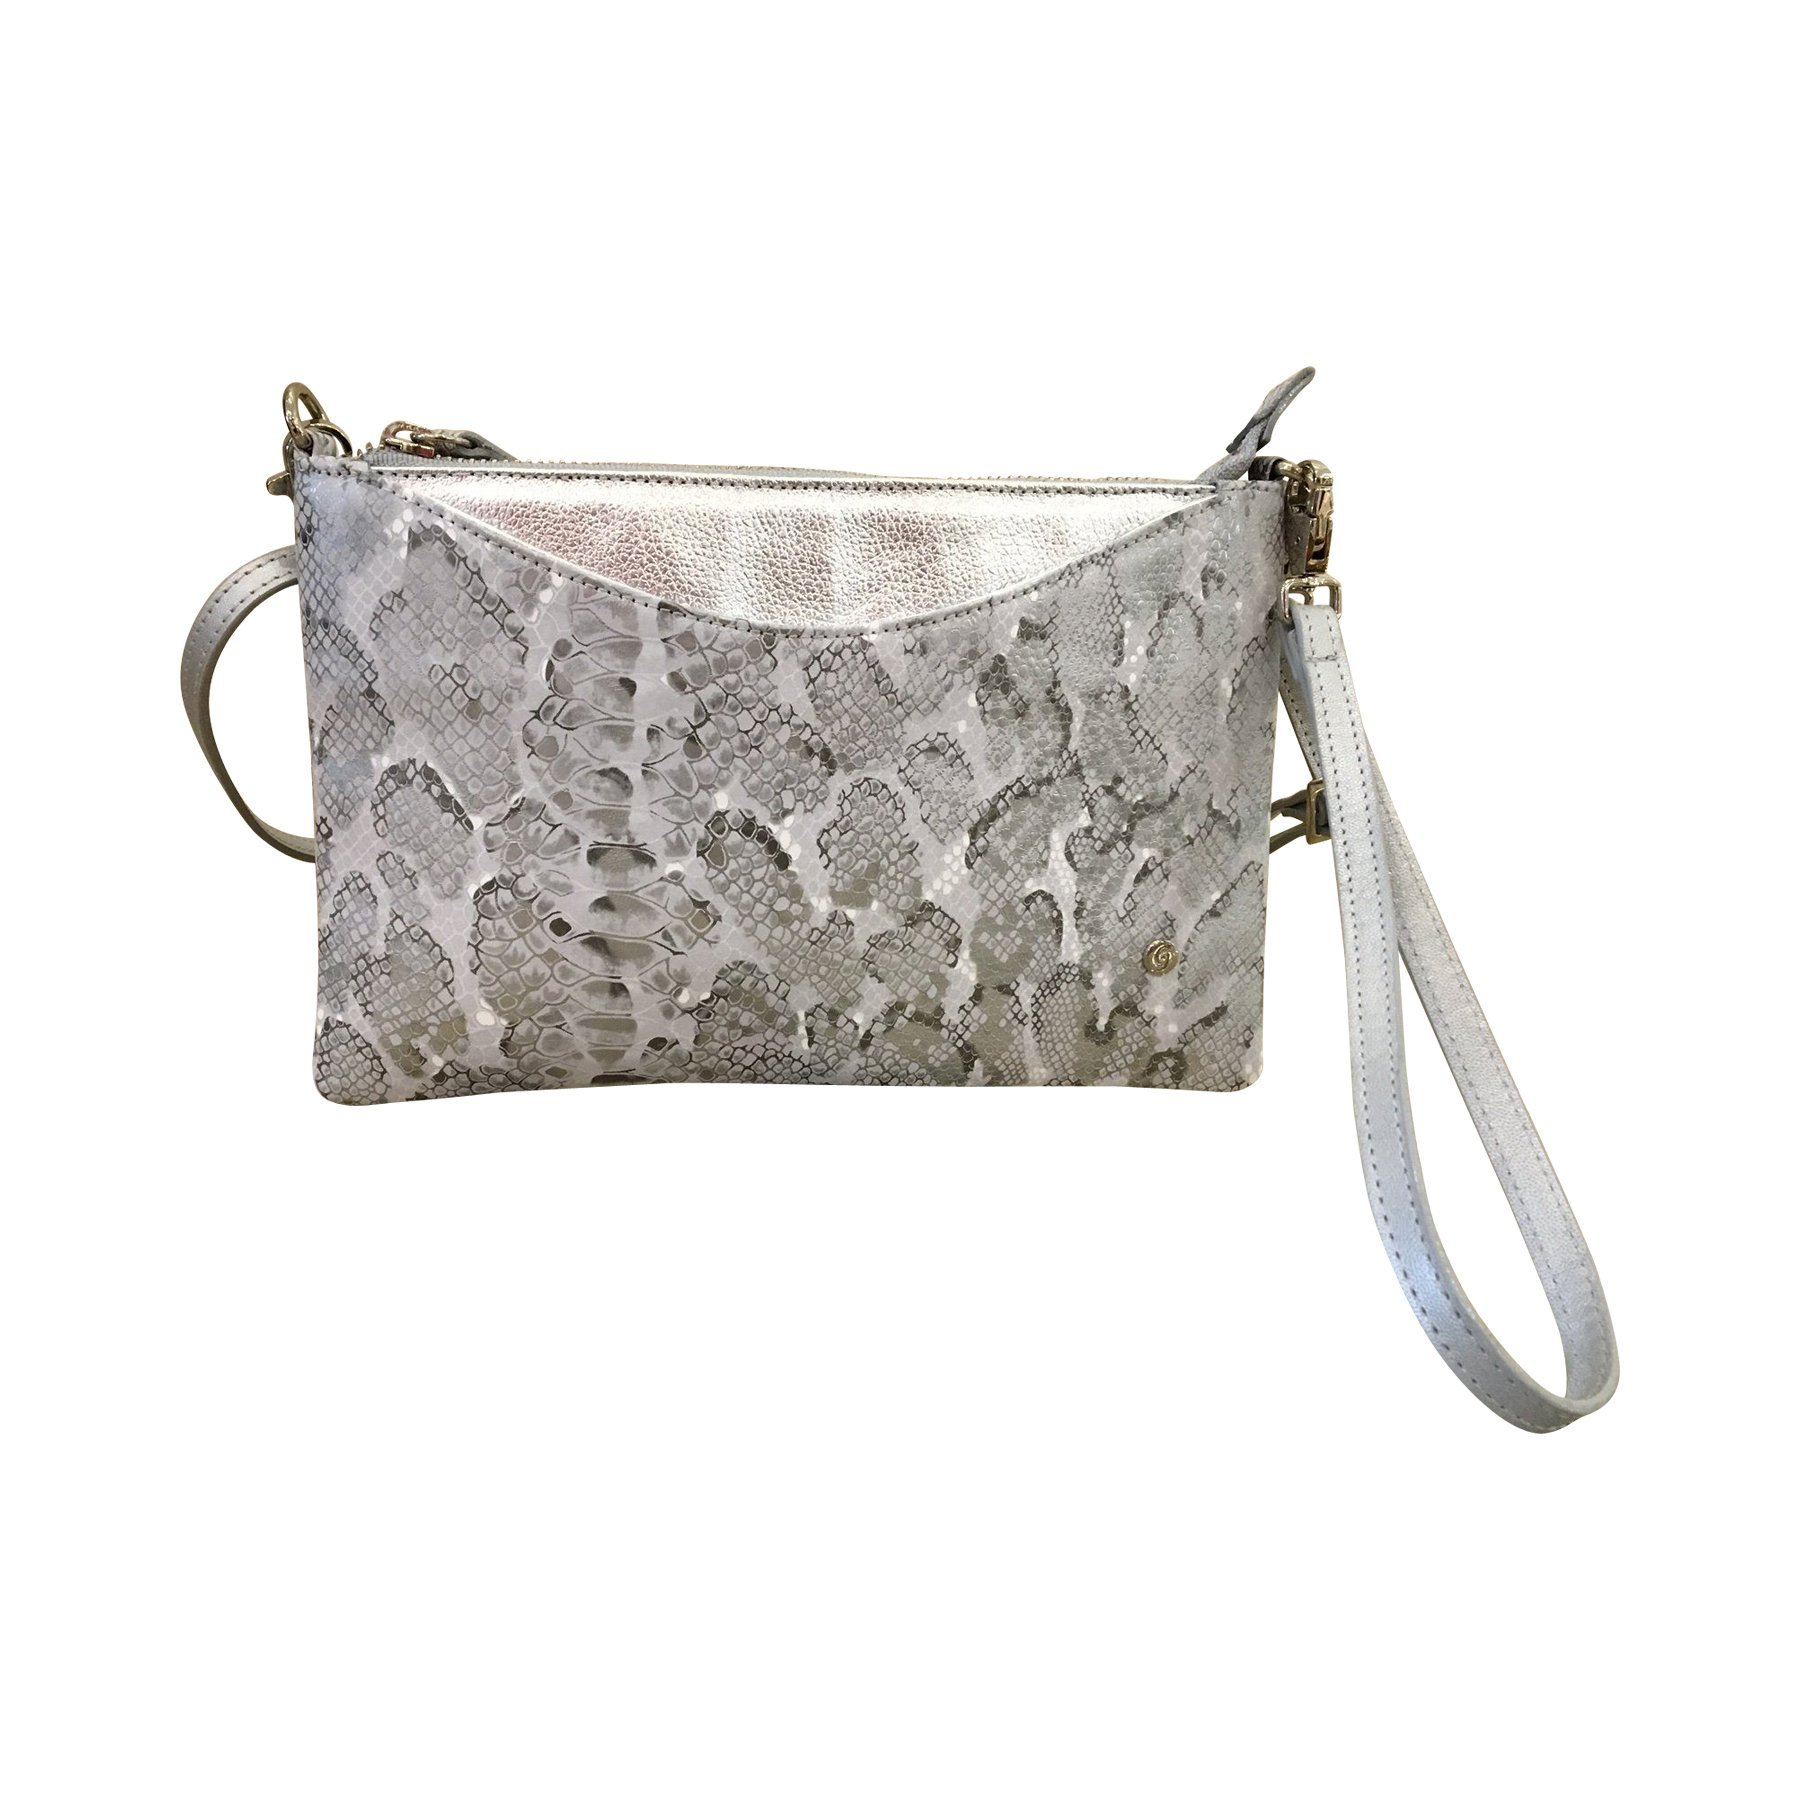 Gaspy Liz Women's Convertible Crossbody and Wristlet Clutch - Handmade from 100 Percent Colombian Cow Leather (Silver)